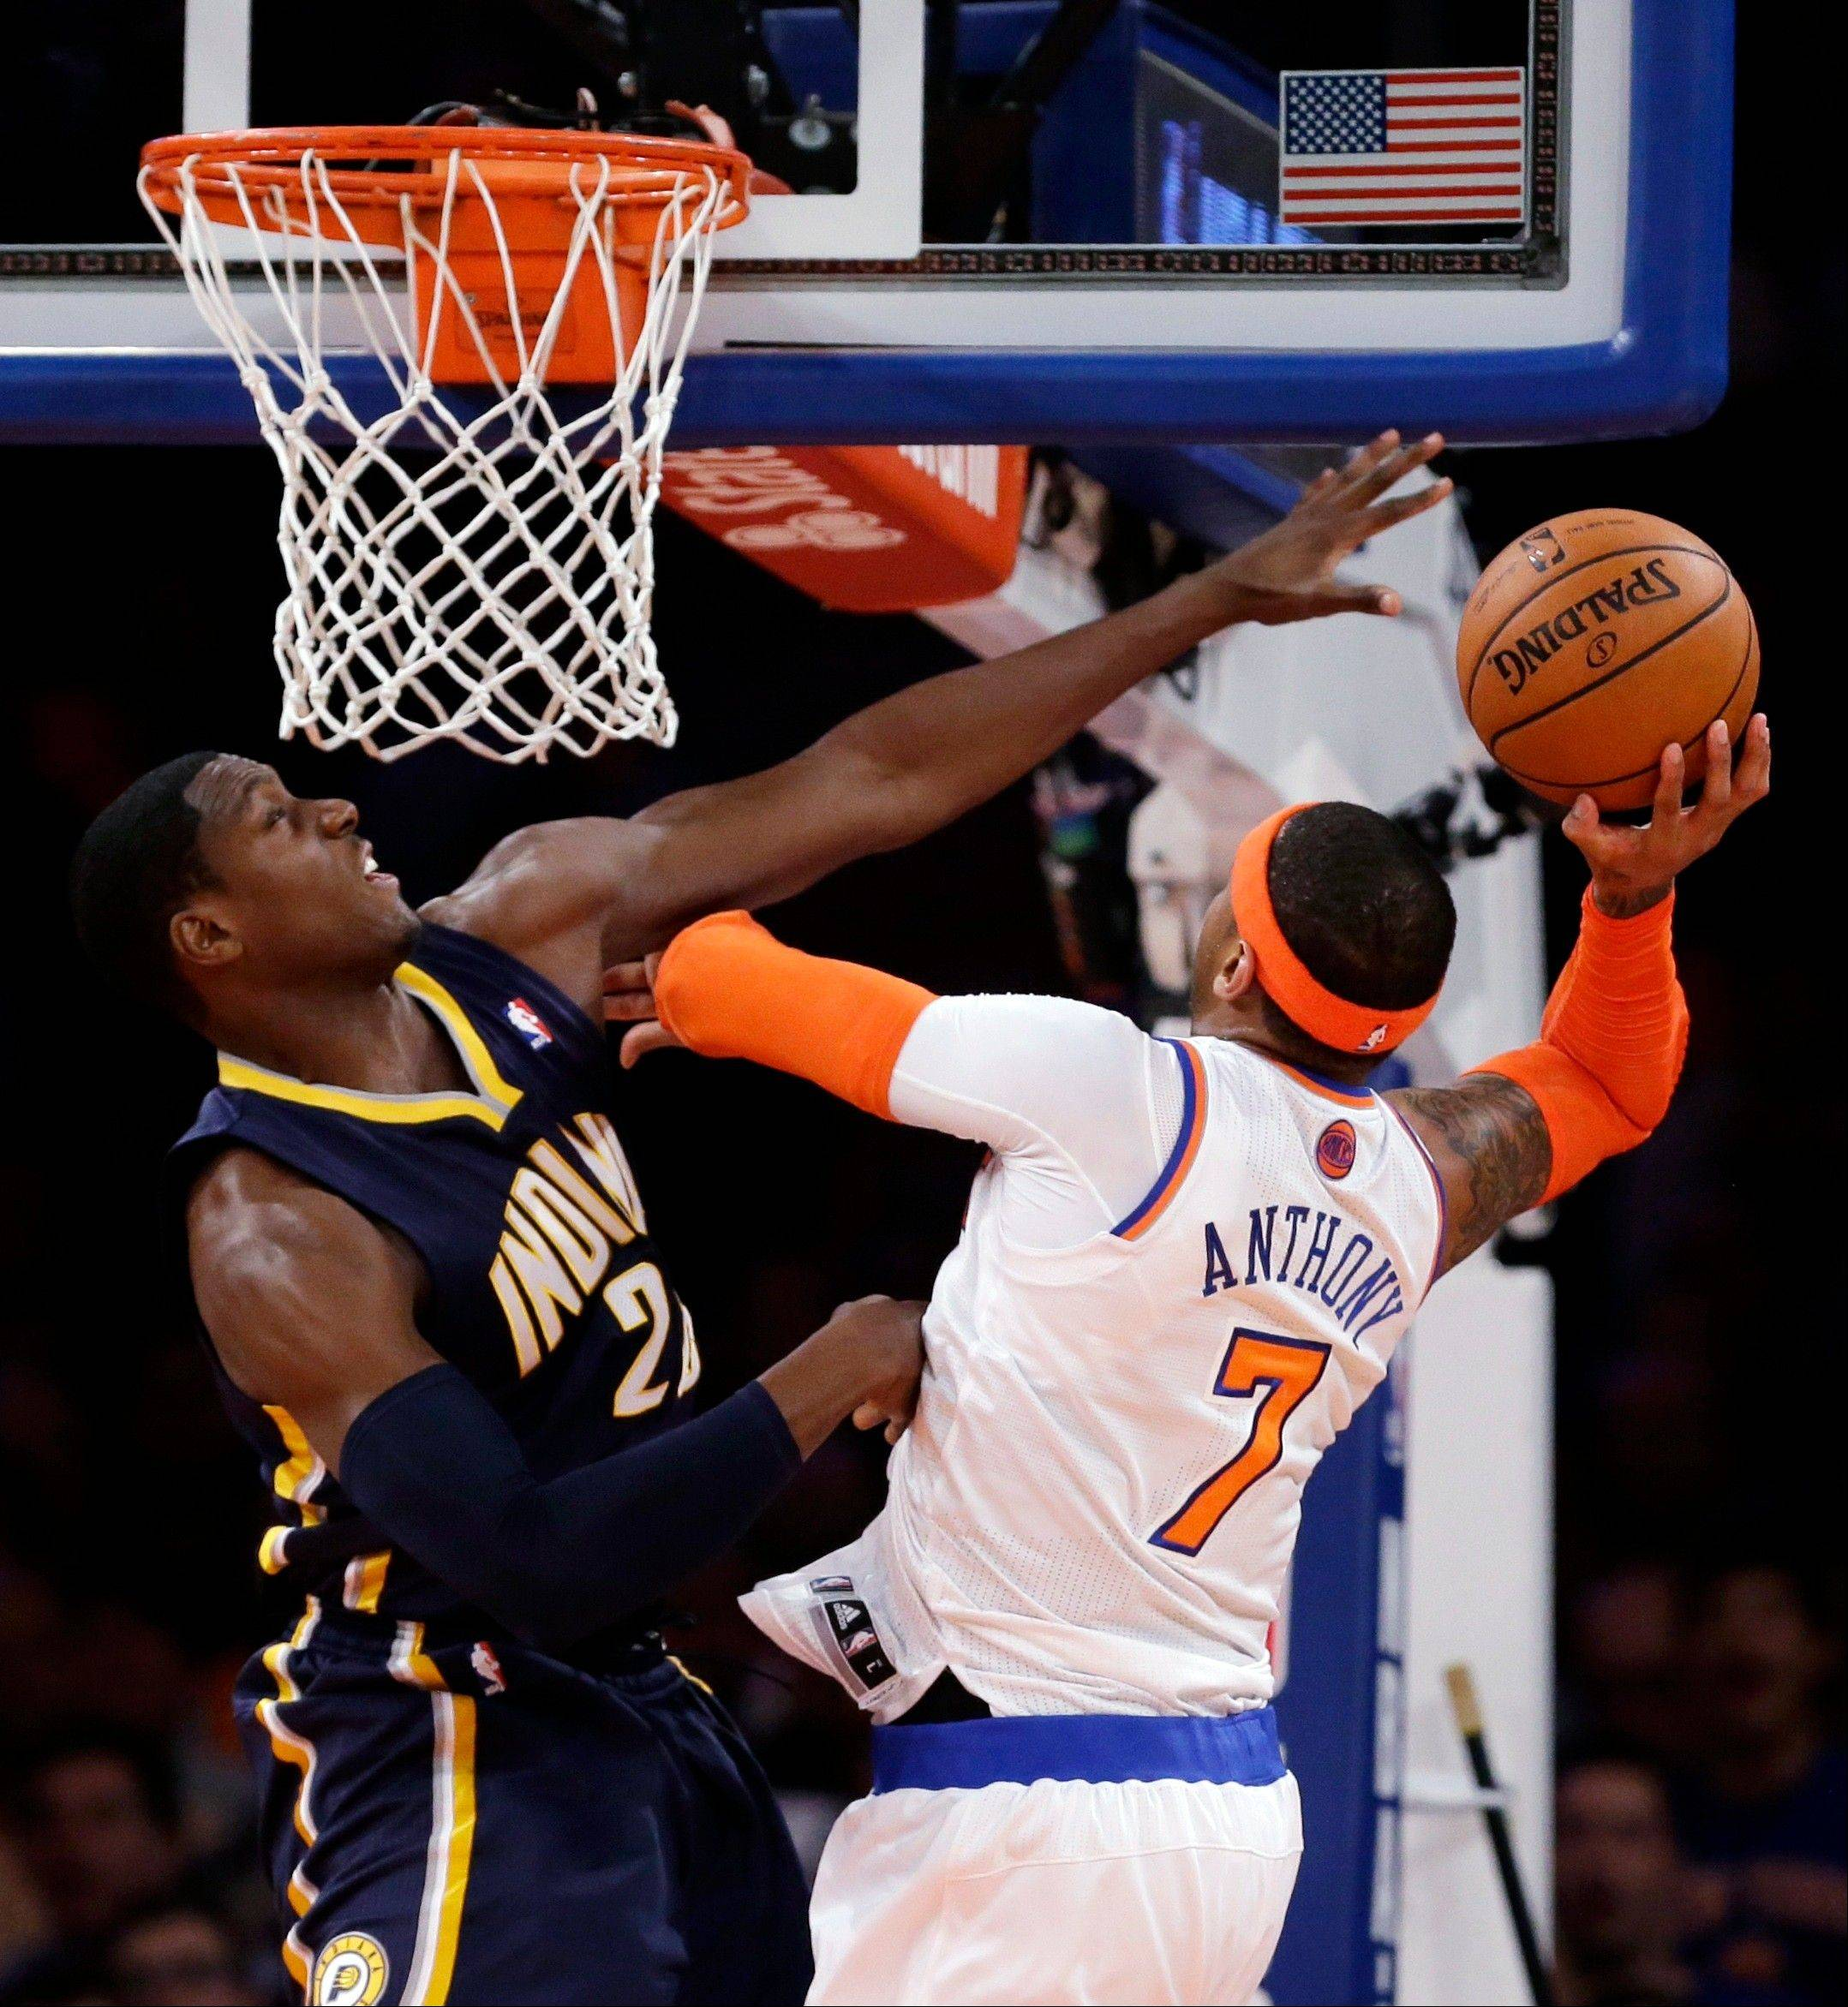 New York Knicks' Carmelo Anthony, right, goes up for a shot against Indiana Pacers' Paul George in the first half of Game 5 of an Eastern Conference semifinal in the NBA basketball playoffs, at Madison Square Garden in New York, Thursday, May 16, 2013.